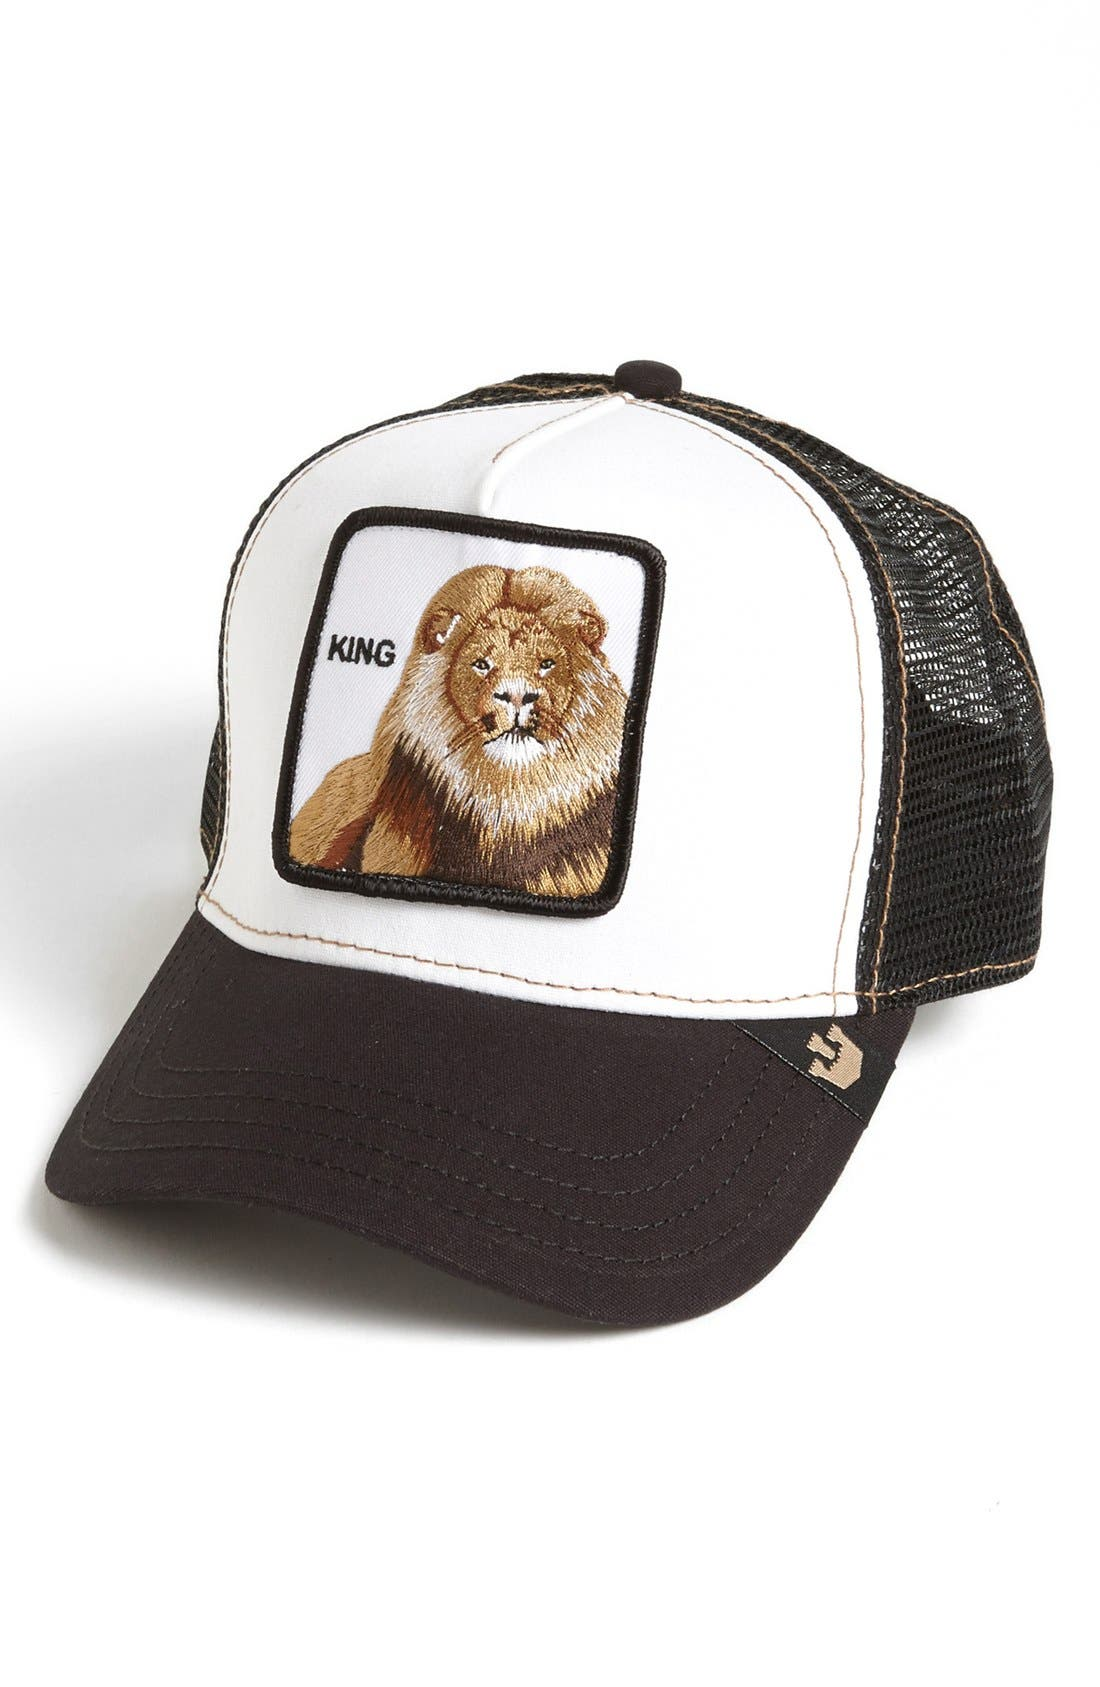 GOORIN BROTHERS Animal Farm - King Trucker Hat